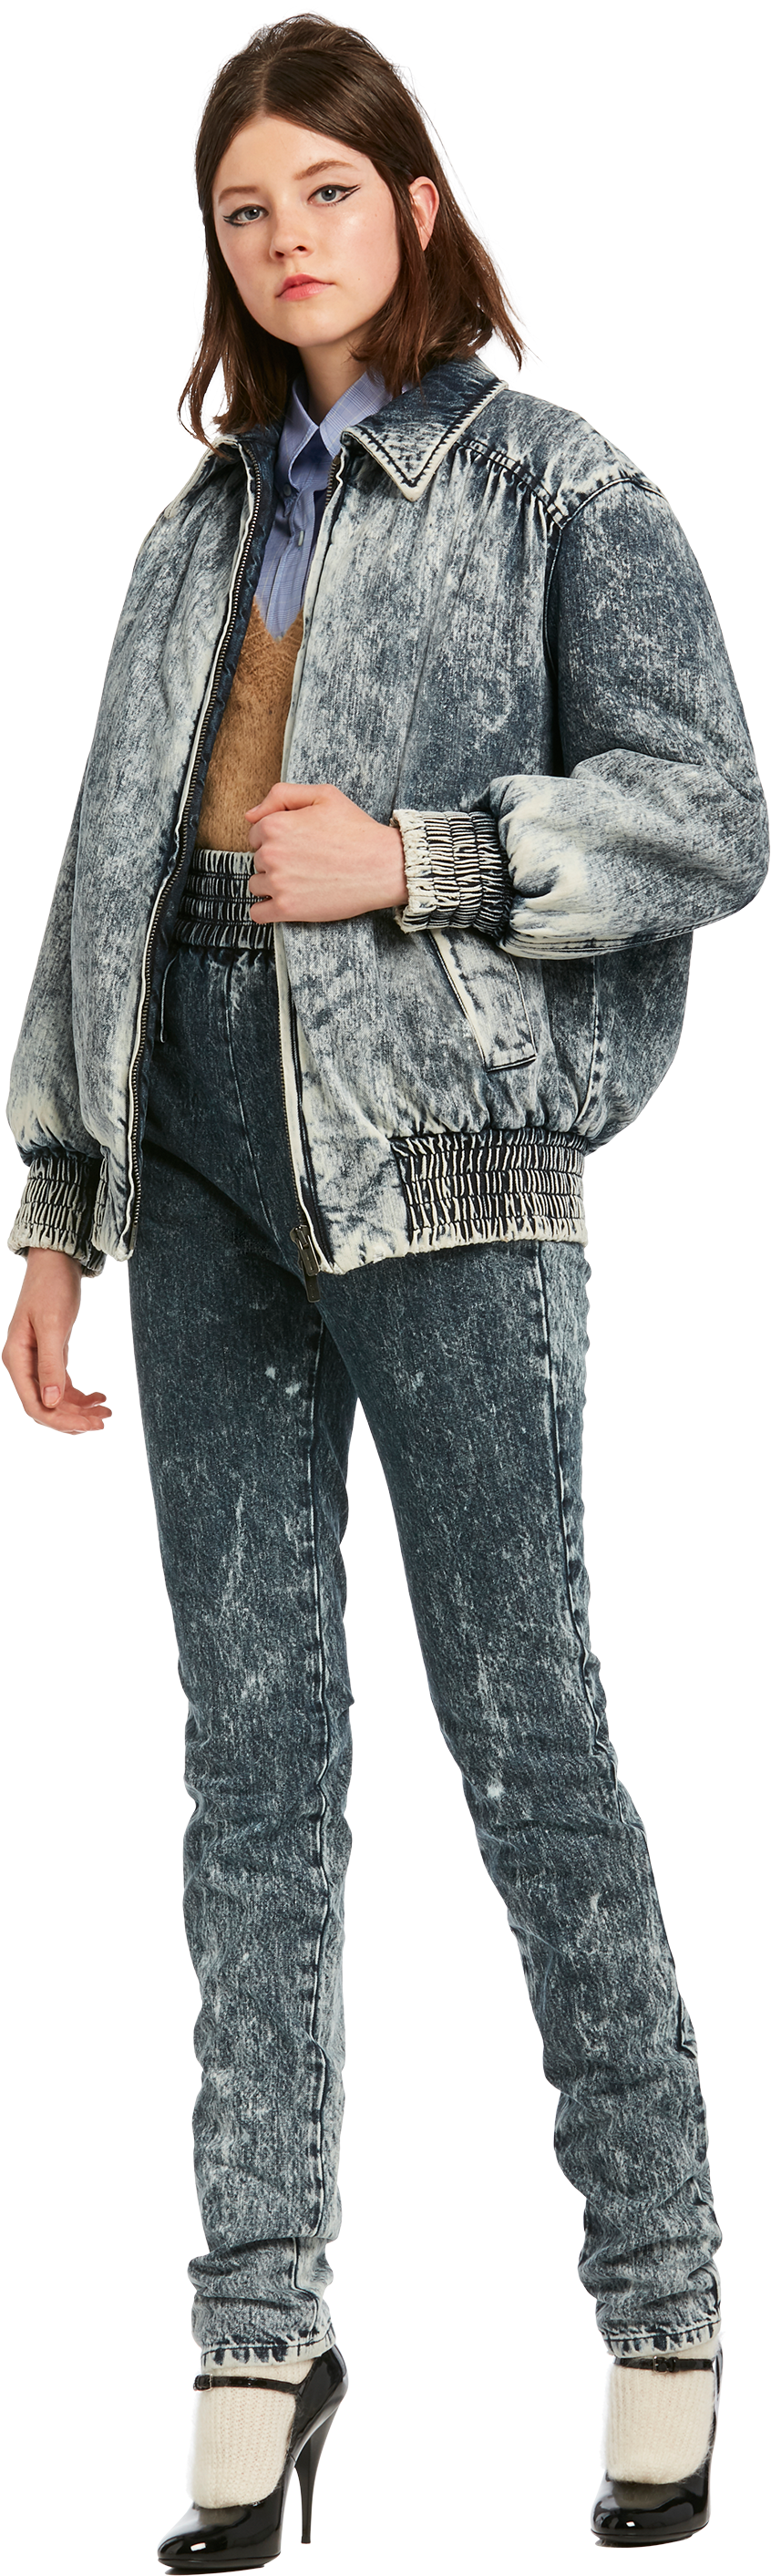 Download Denim Jacket Girl Png Image With No Background Pngkey Com